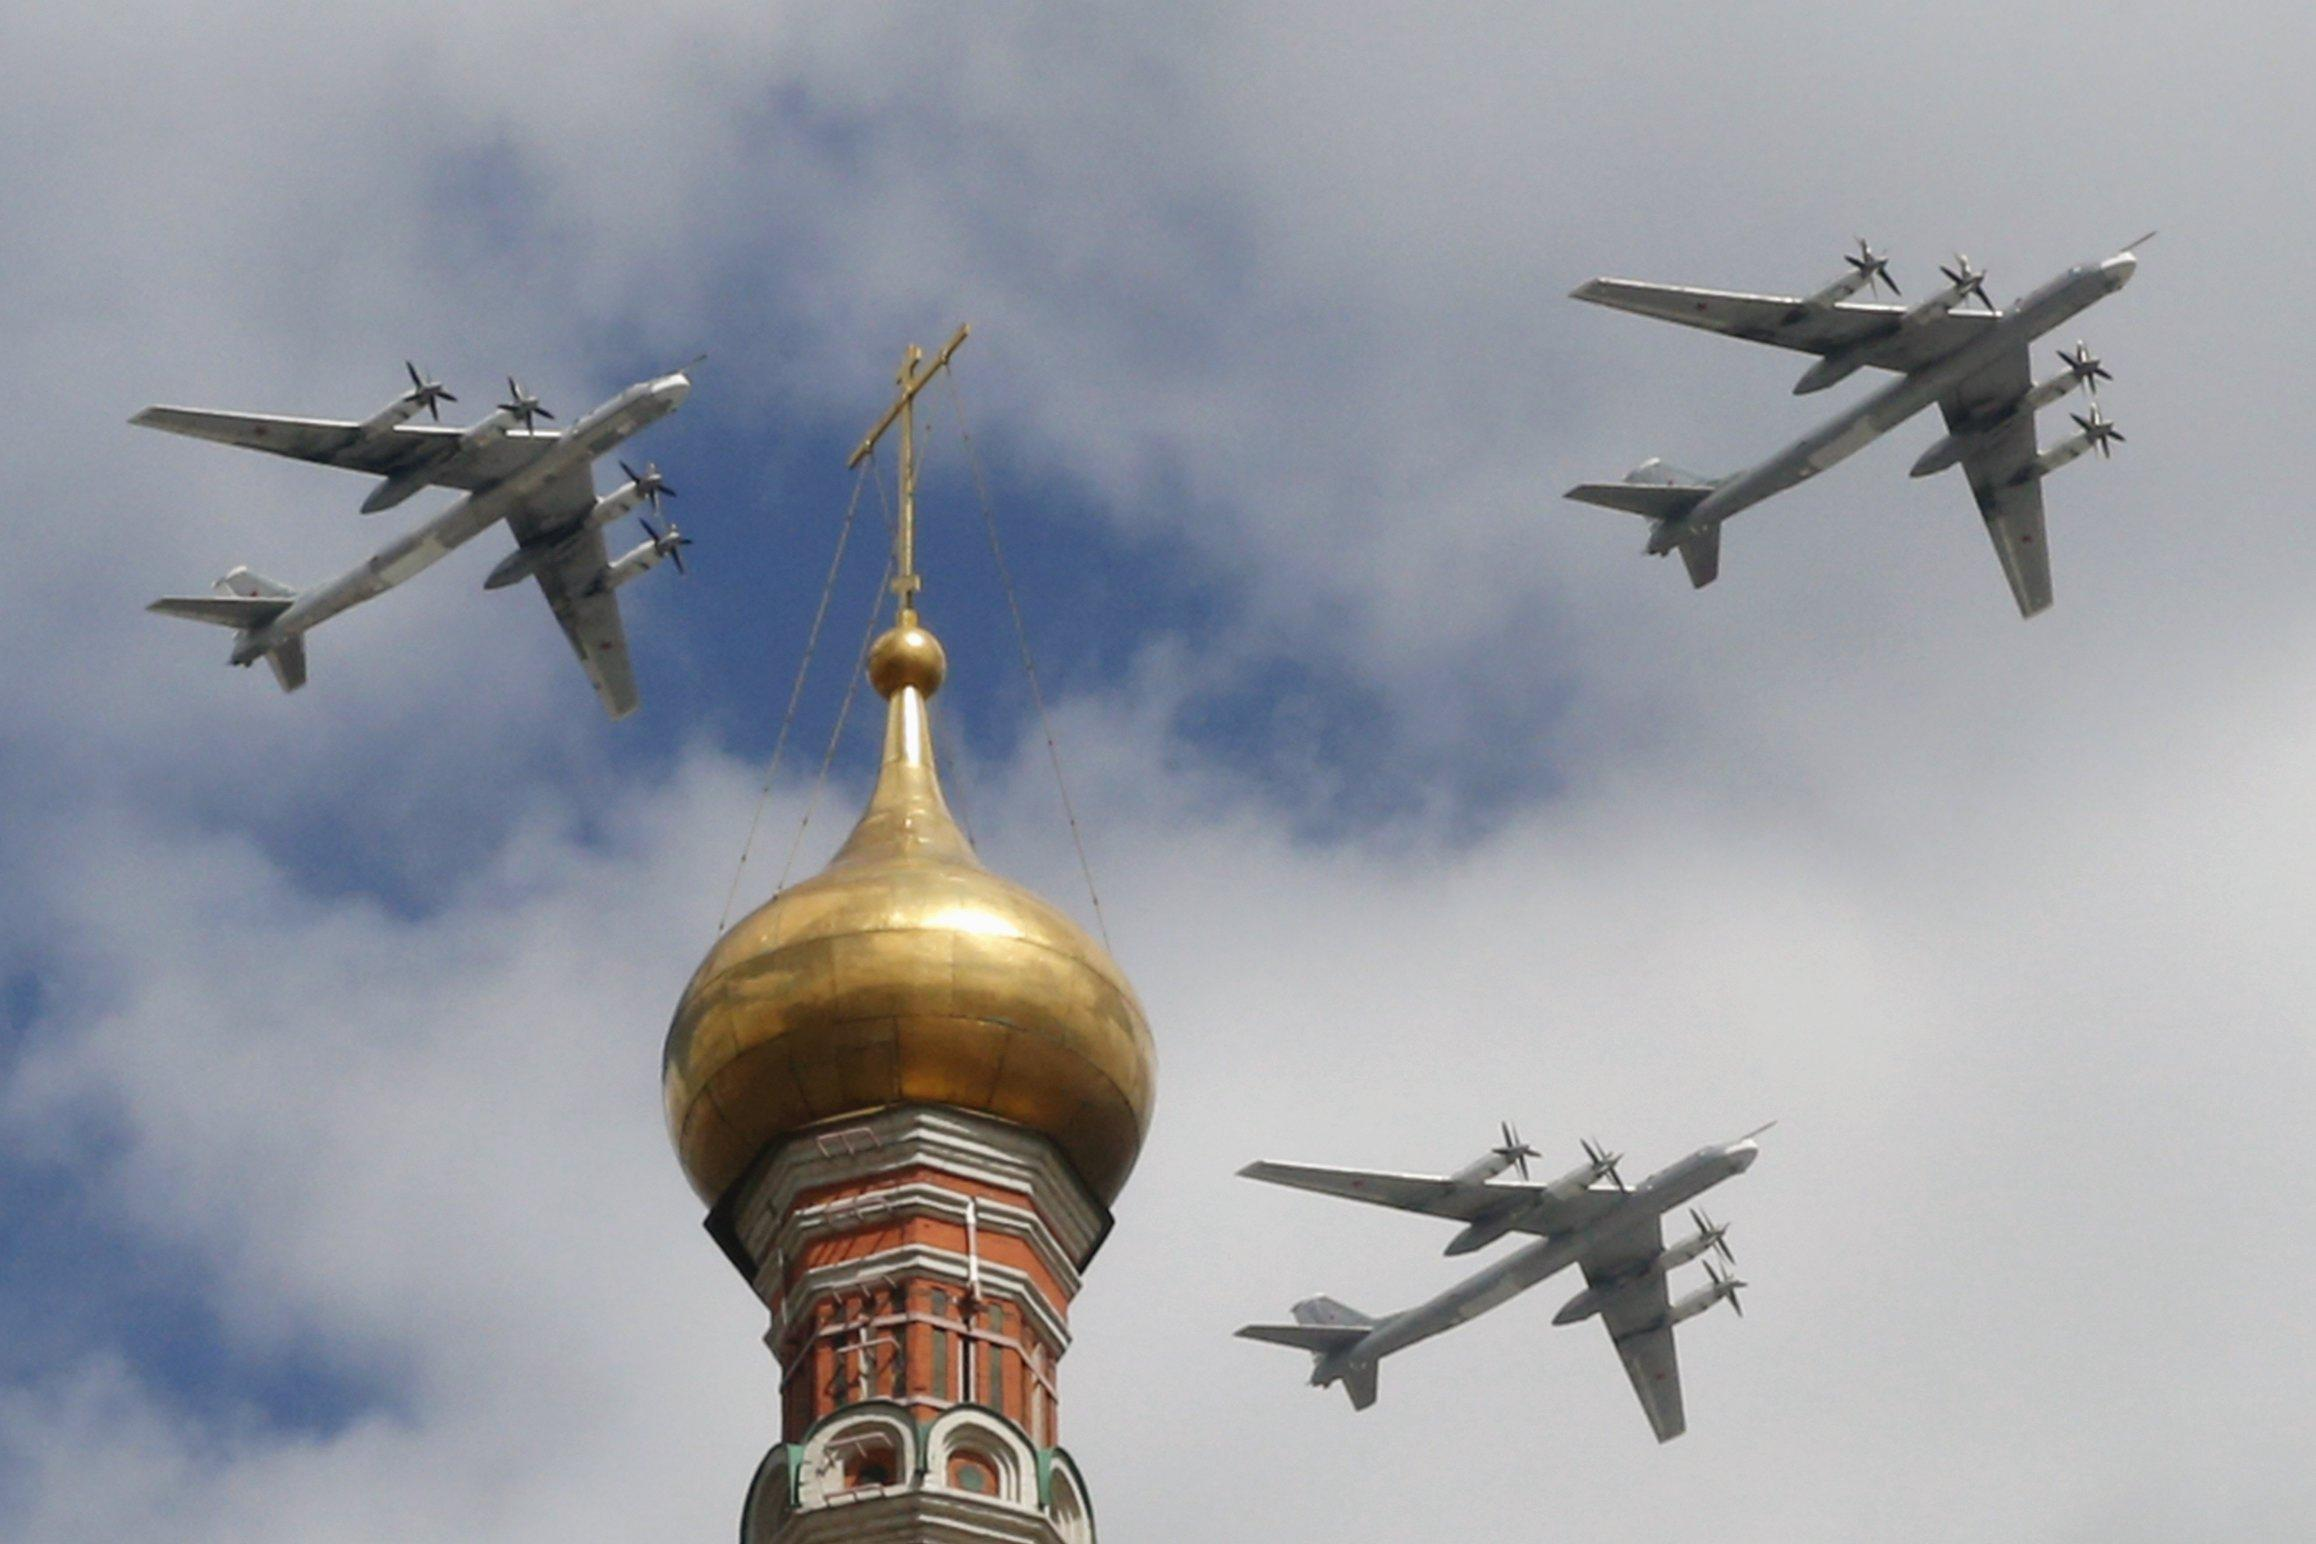 Russian bombers fly in formation over Moscow.